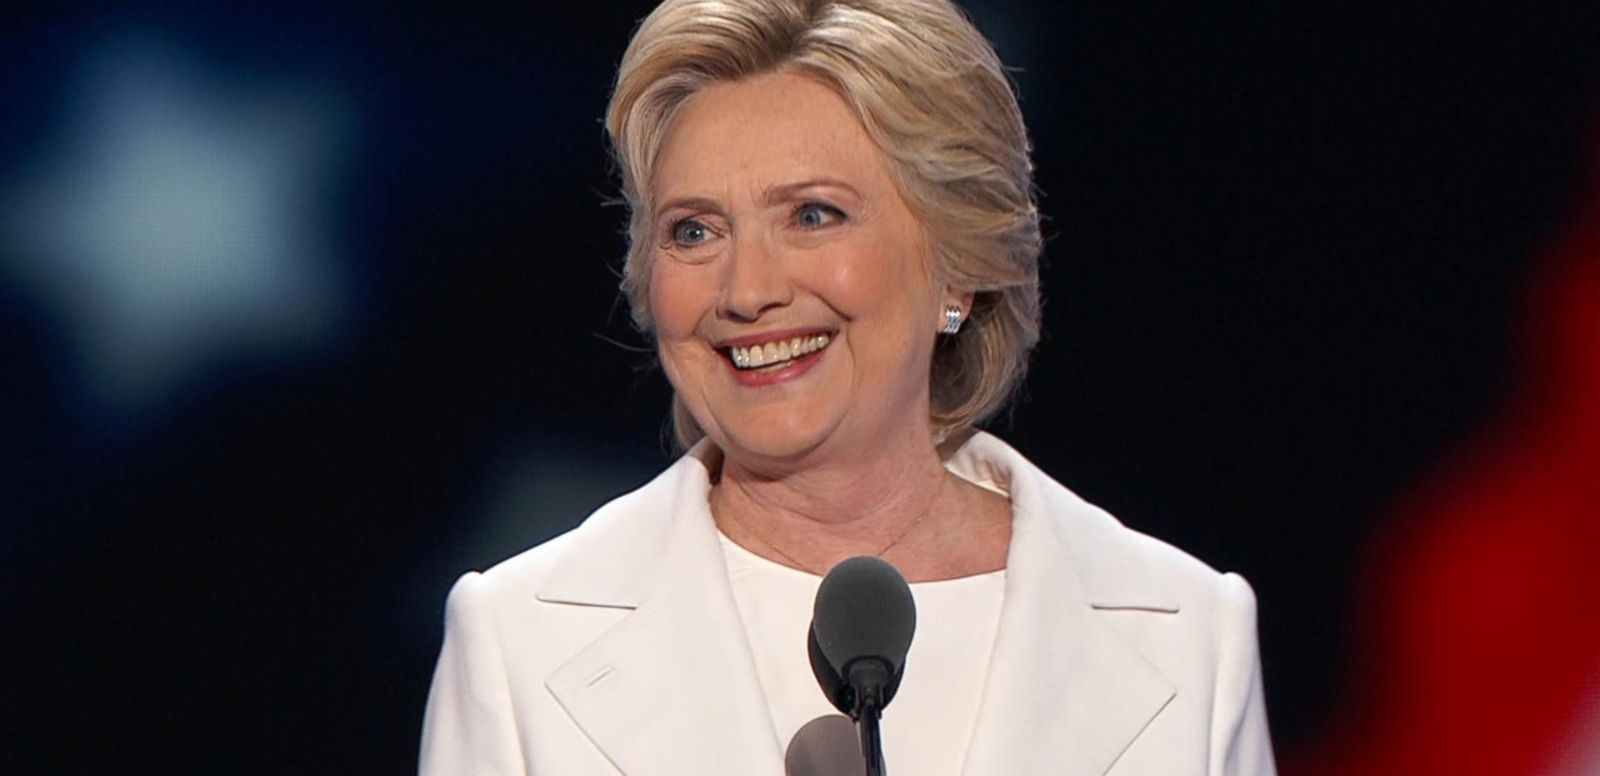 She has officially become the first female nominee of a major political party.